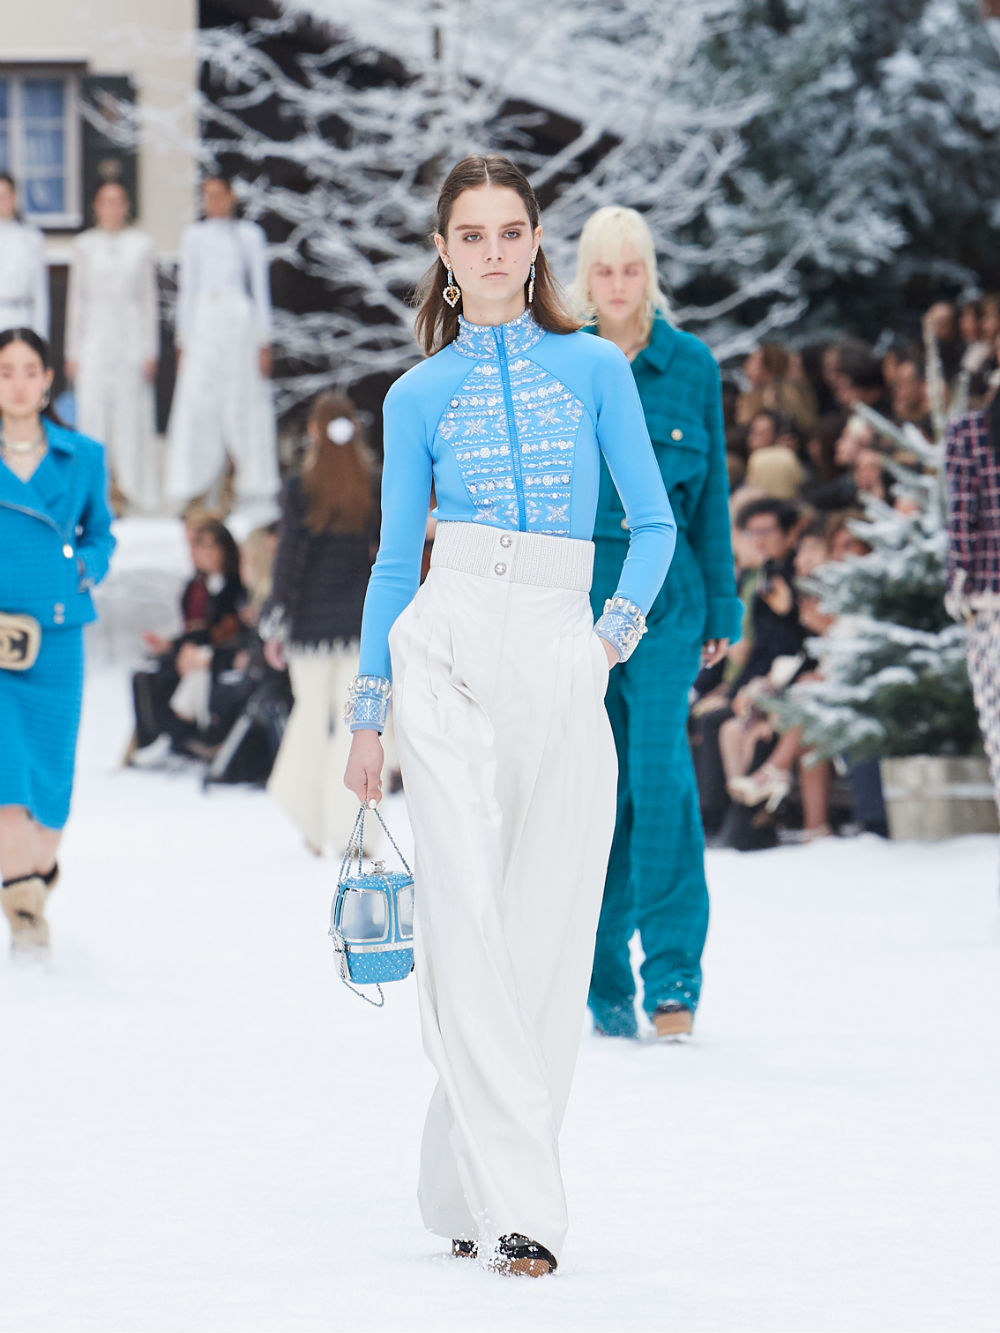 FALL-WINTER 201920 READY-TO-WEAR COLLECTION (32)